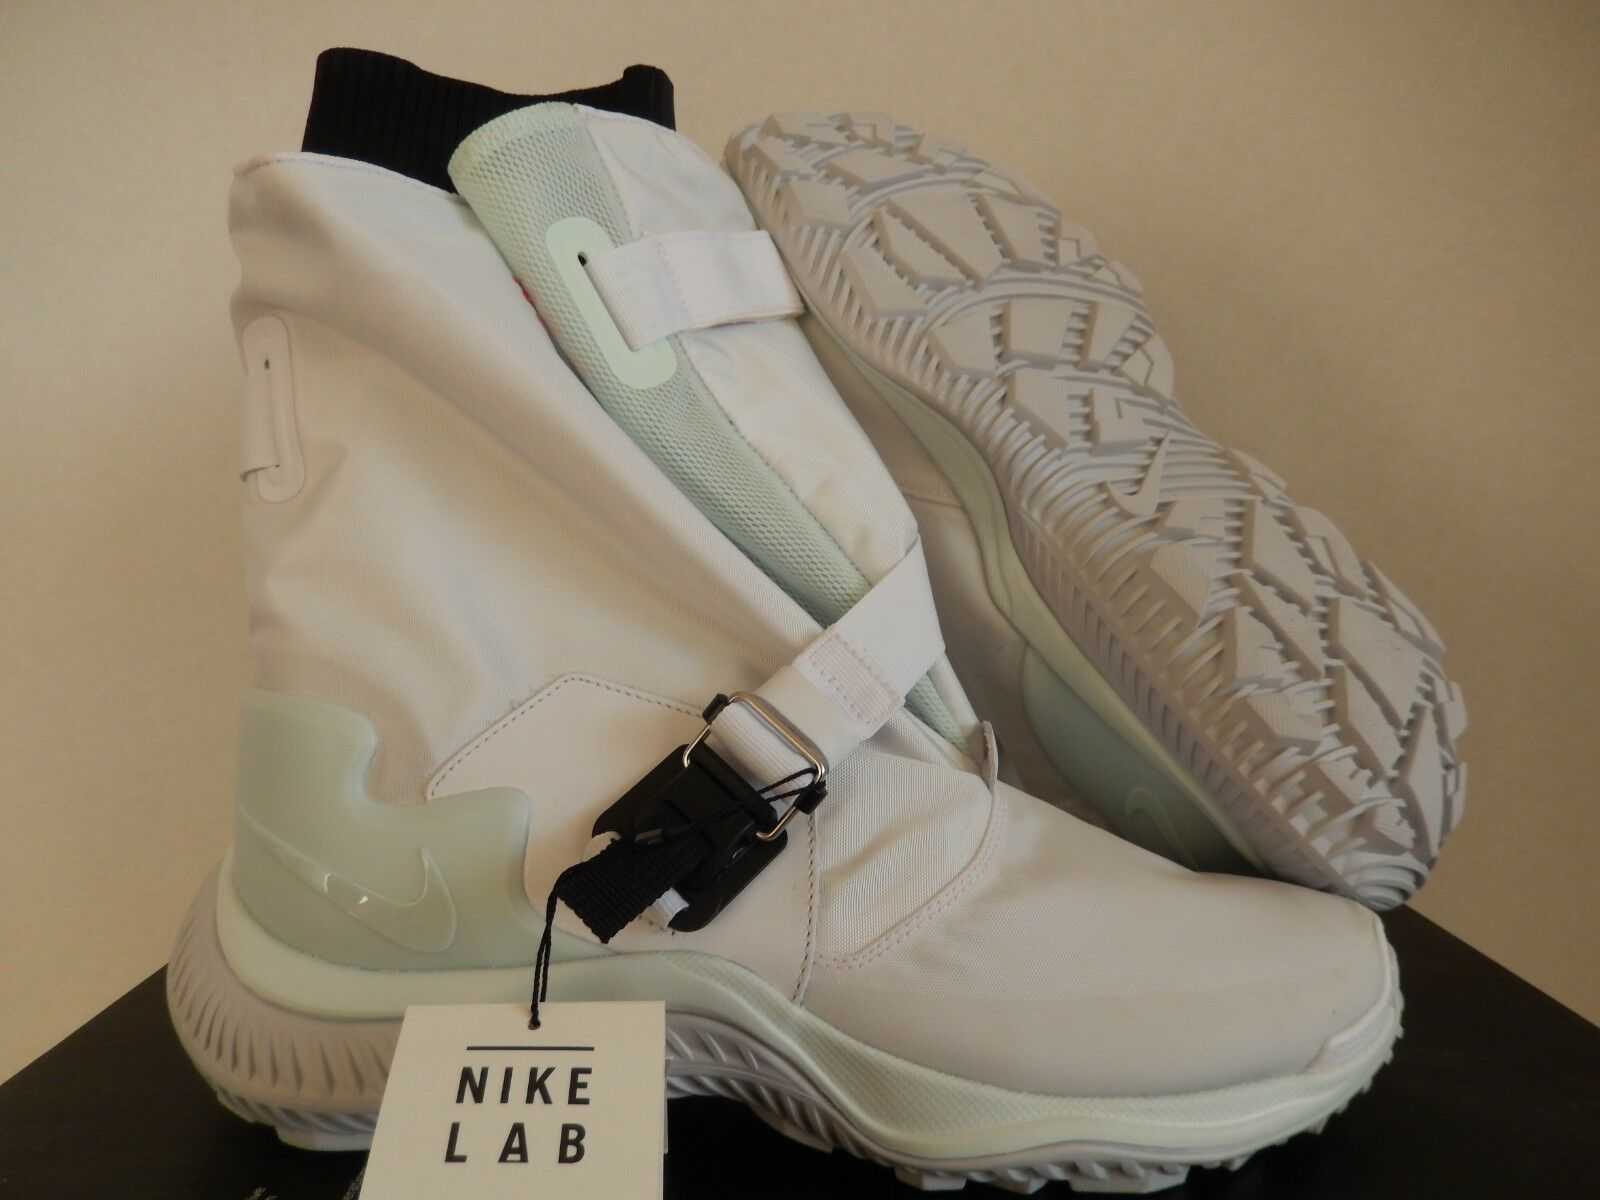 WMNS NIKE NIKELAB NSW GAITER BOOT WHITE-BARELY GREEN-BLACK SZ 5 [AA0528-100]